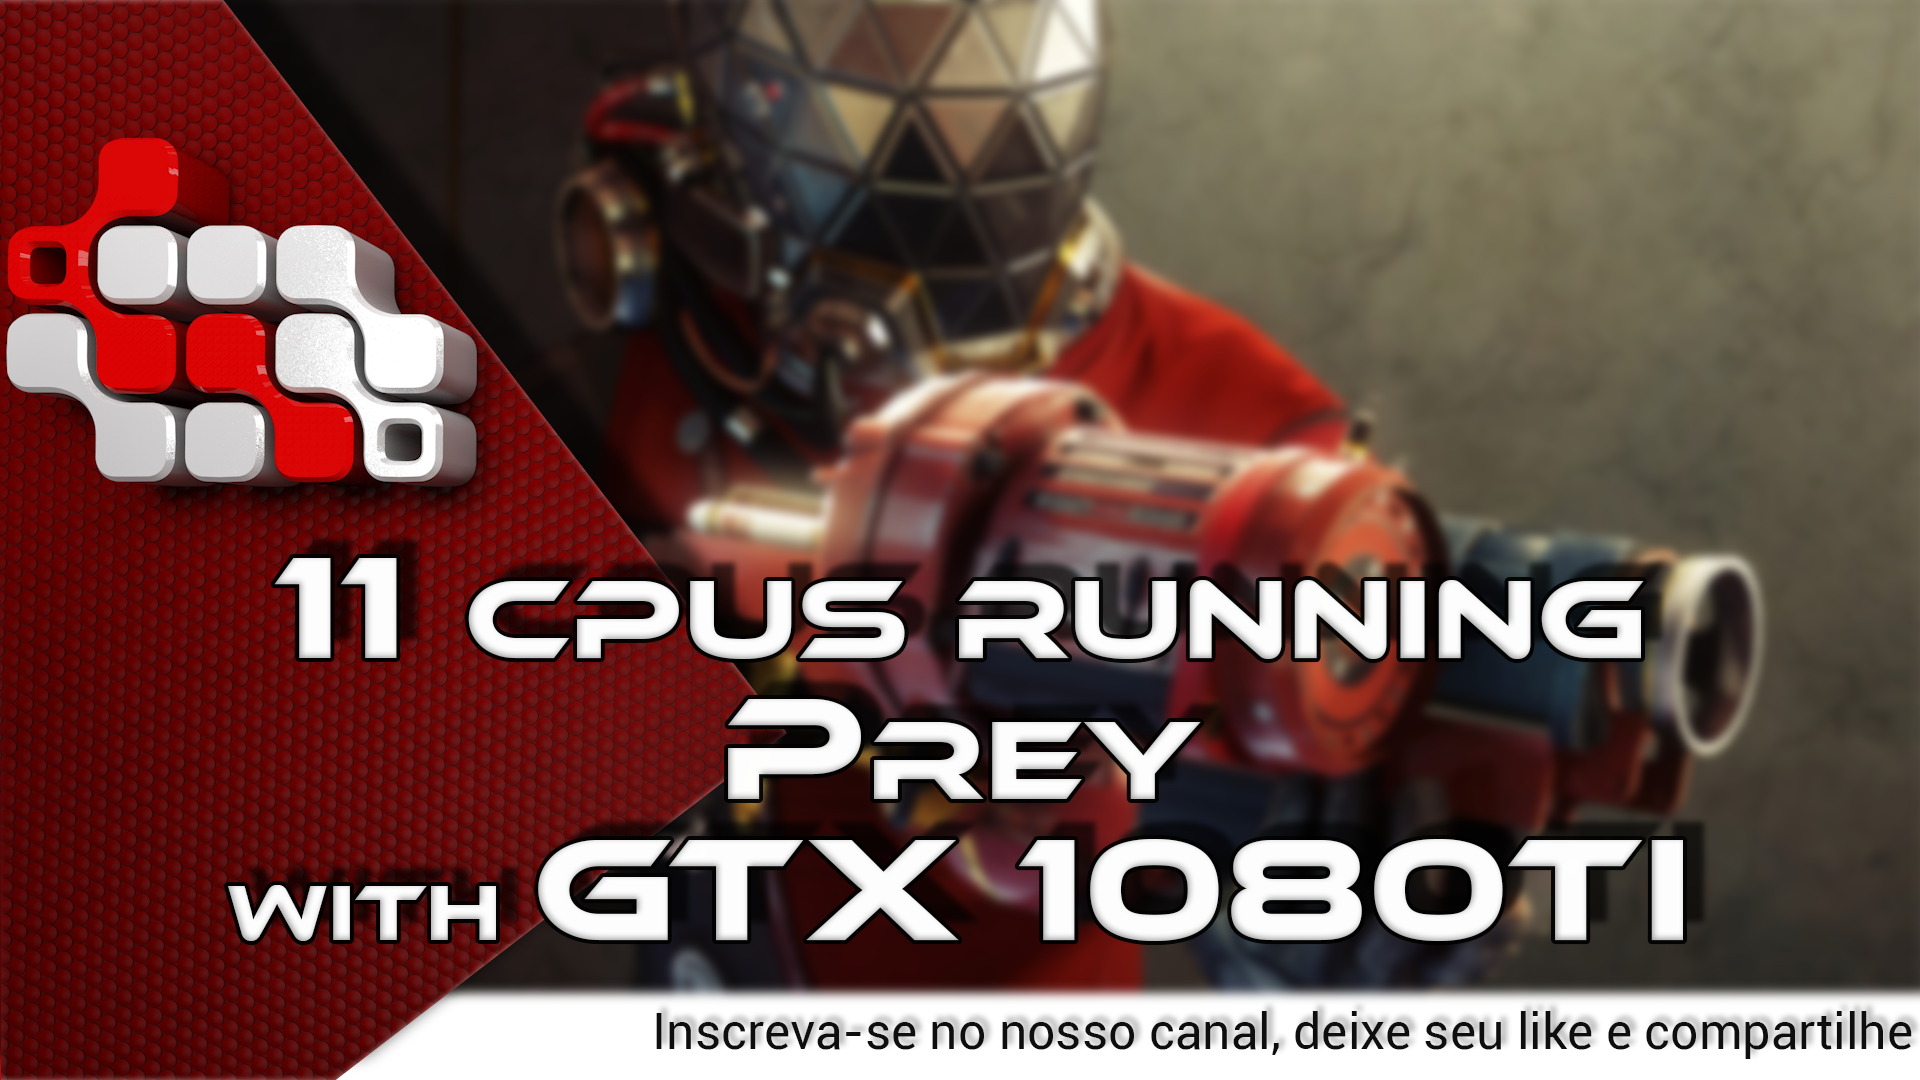 Prey running the GTX 1080Ti on 11 CPUs (more to come)